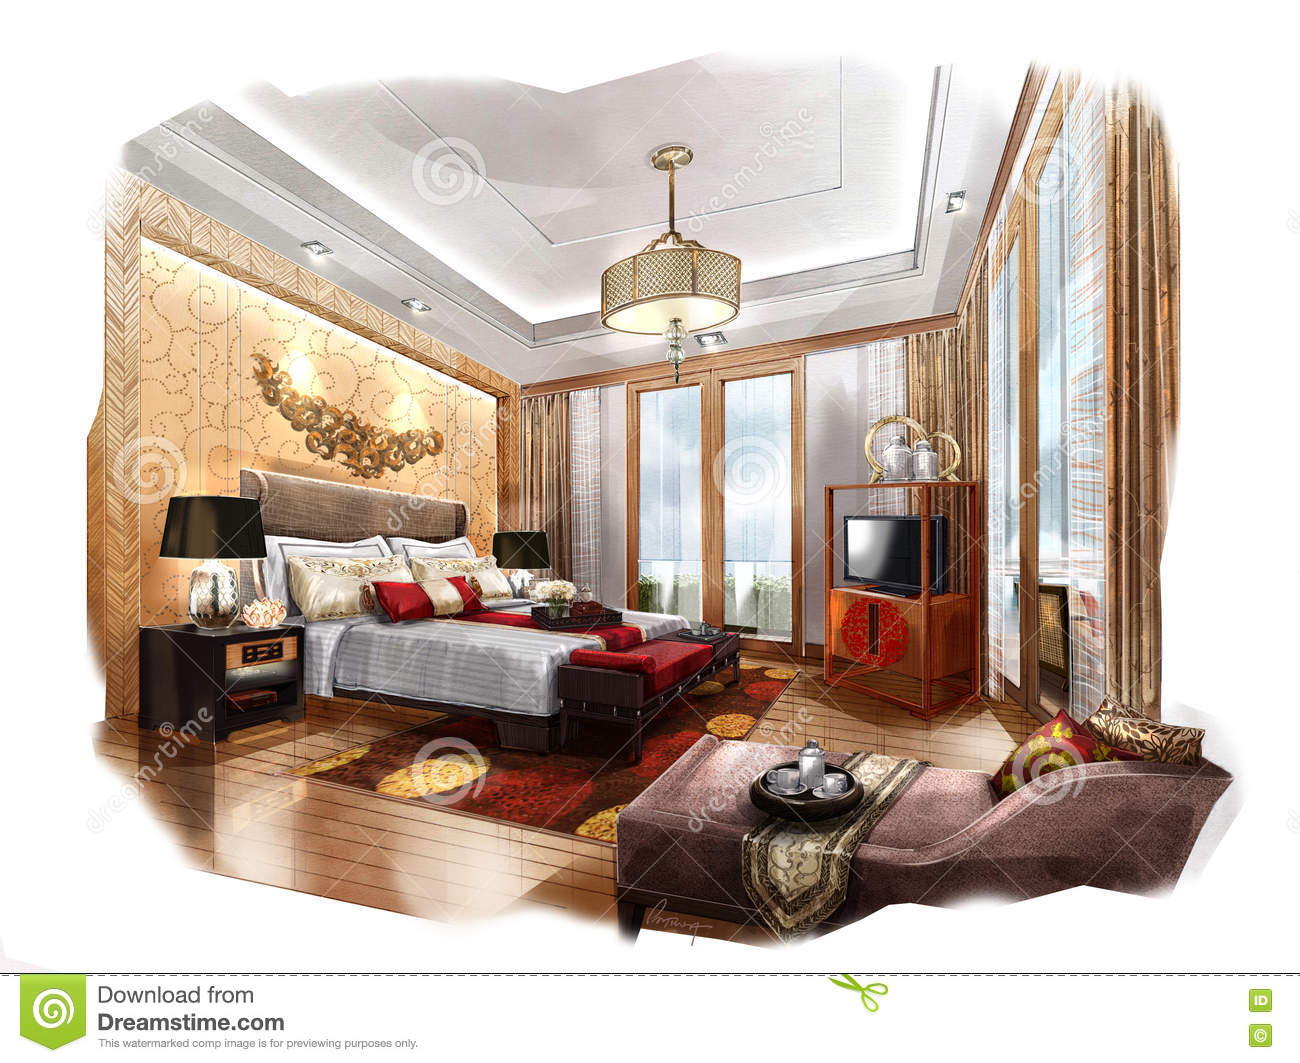 Bedroom drawing with color - Sketch Perspective Interior Bedroom Into A Watercolor On Paper Royalty Free Stock Images